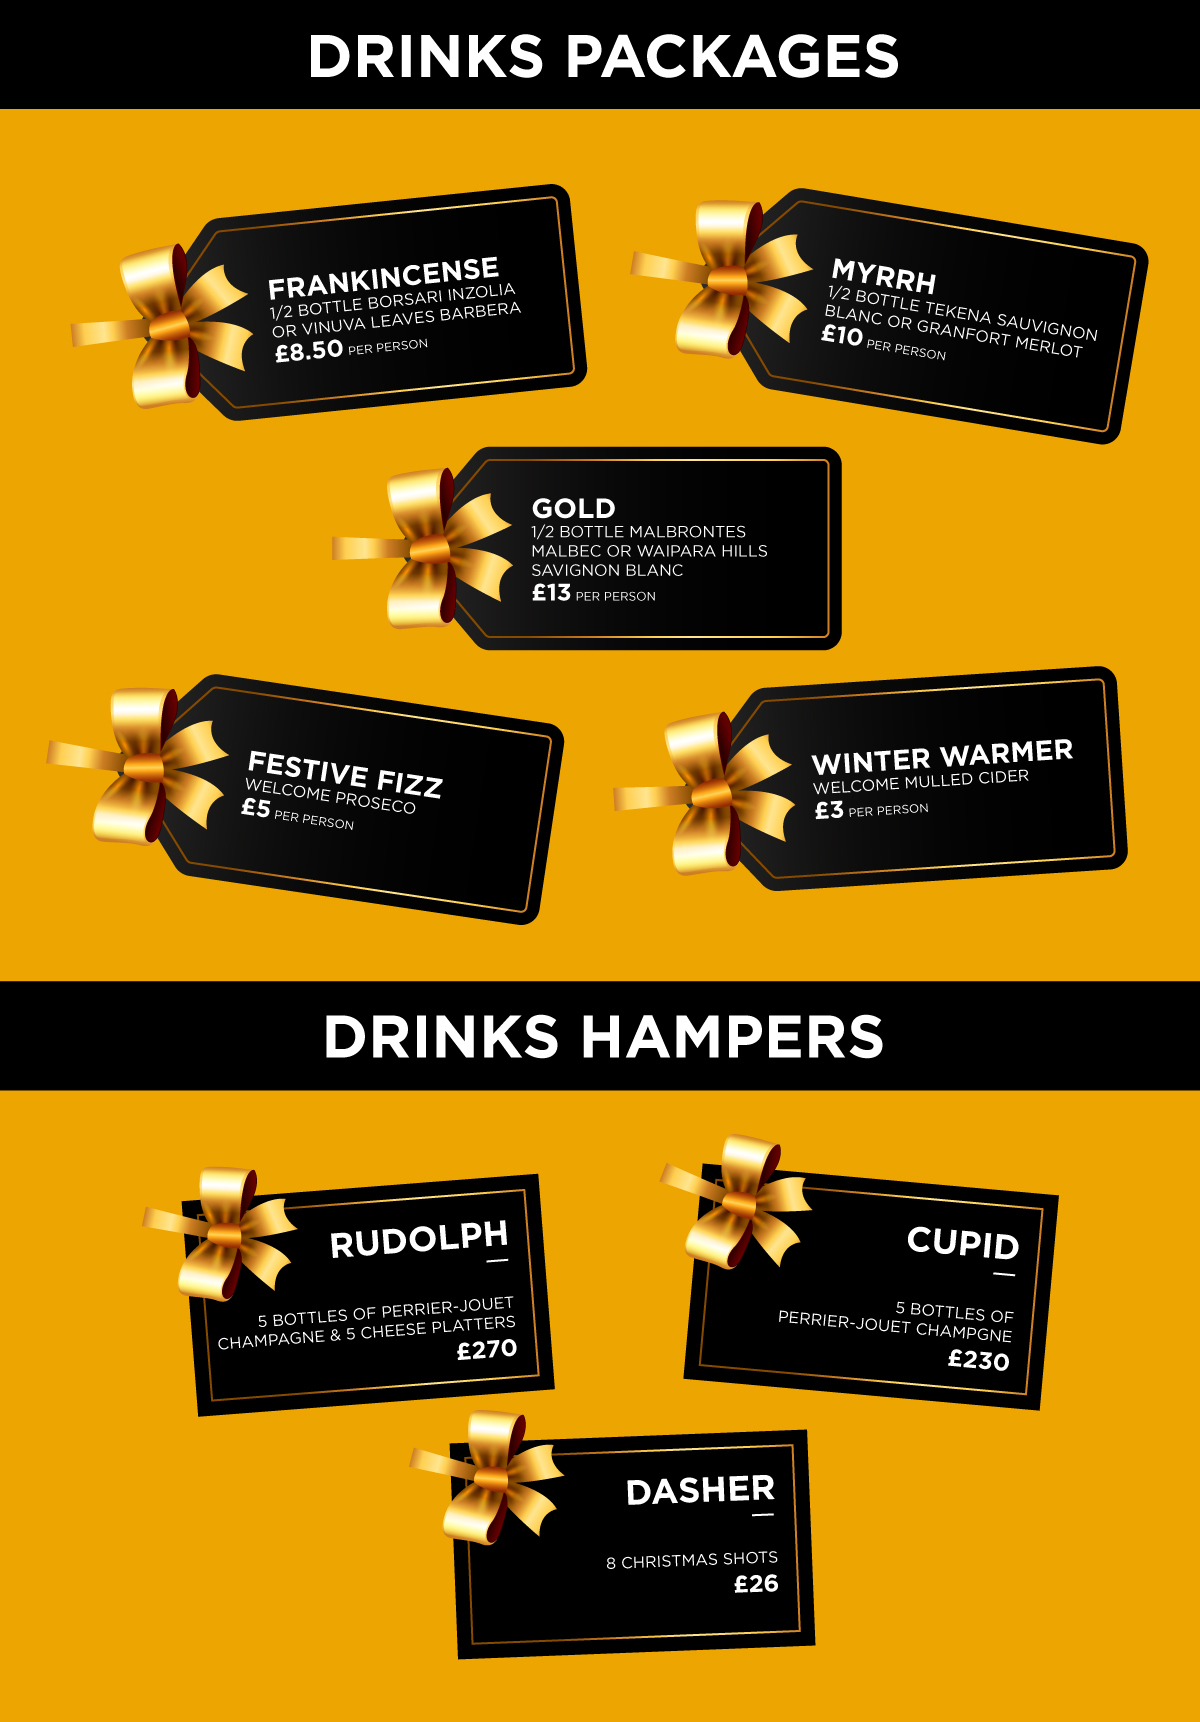 racks-xmas-drink-hampers